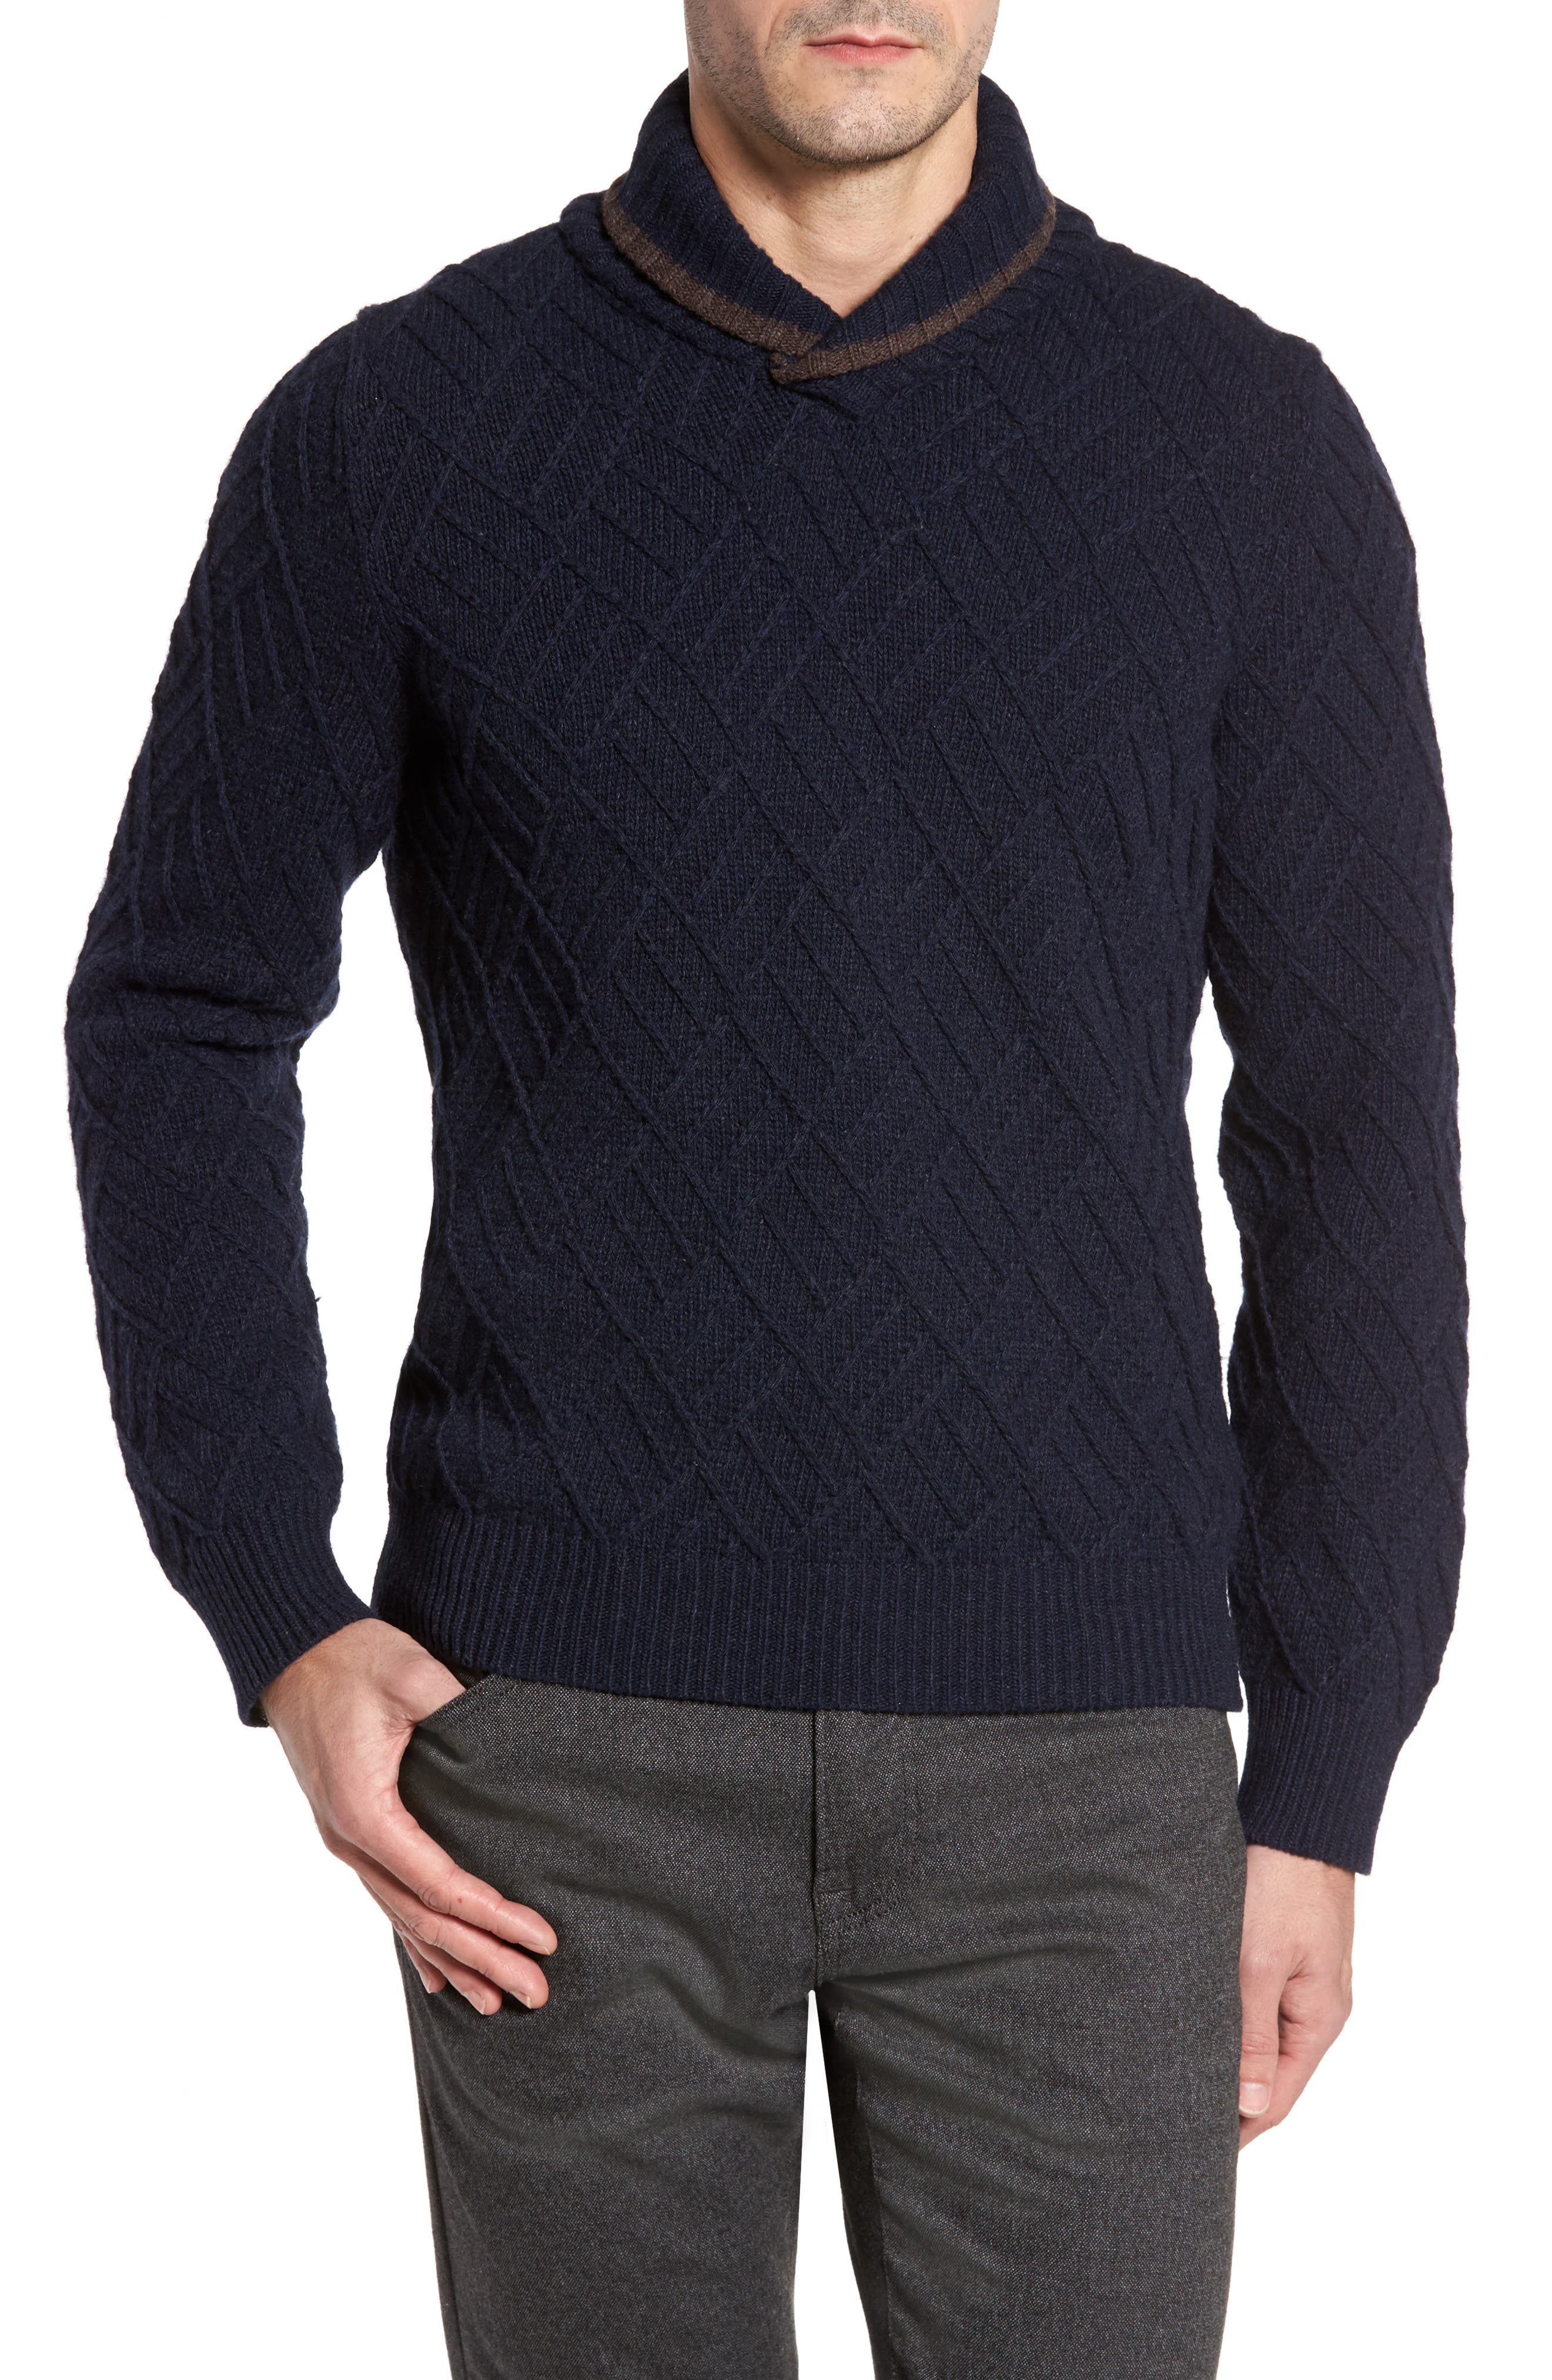 Main Image - Luciano Barbera Textured Wool Sweater